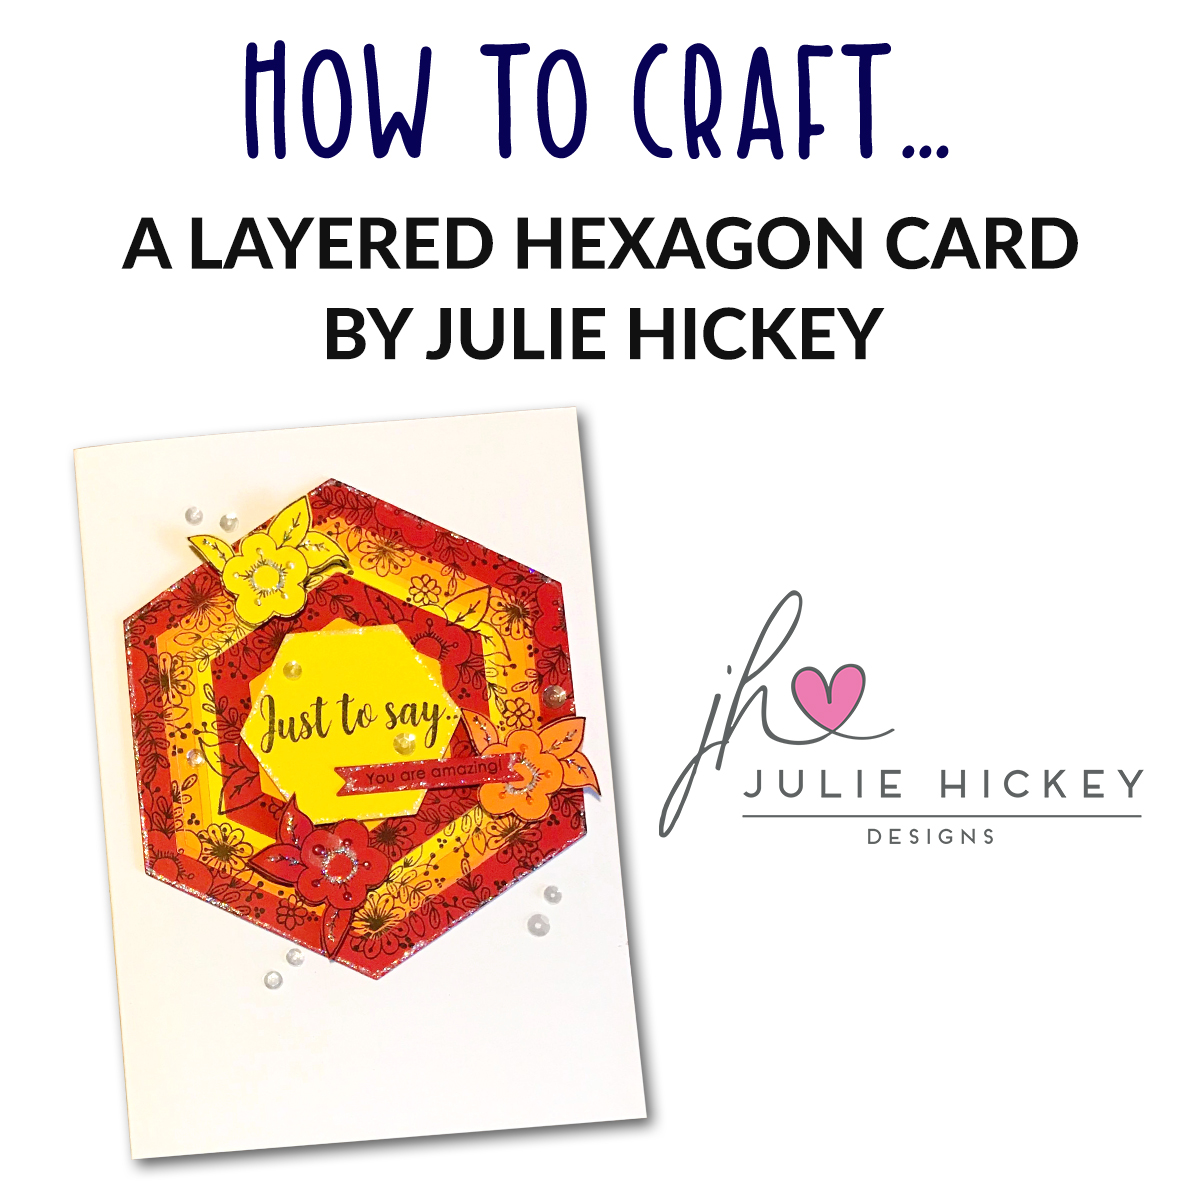 Do you need some crafty inspiration? Then check out our brand new tutorial from Julie Hickey Designs!   View the tutorial http://bit.ly/2G0z5zs pic.twitter.com/Lkg75yX7u6